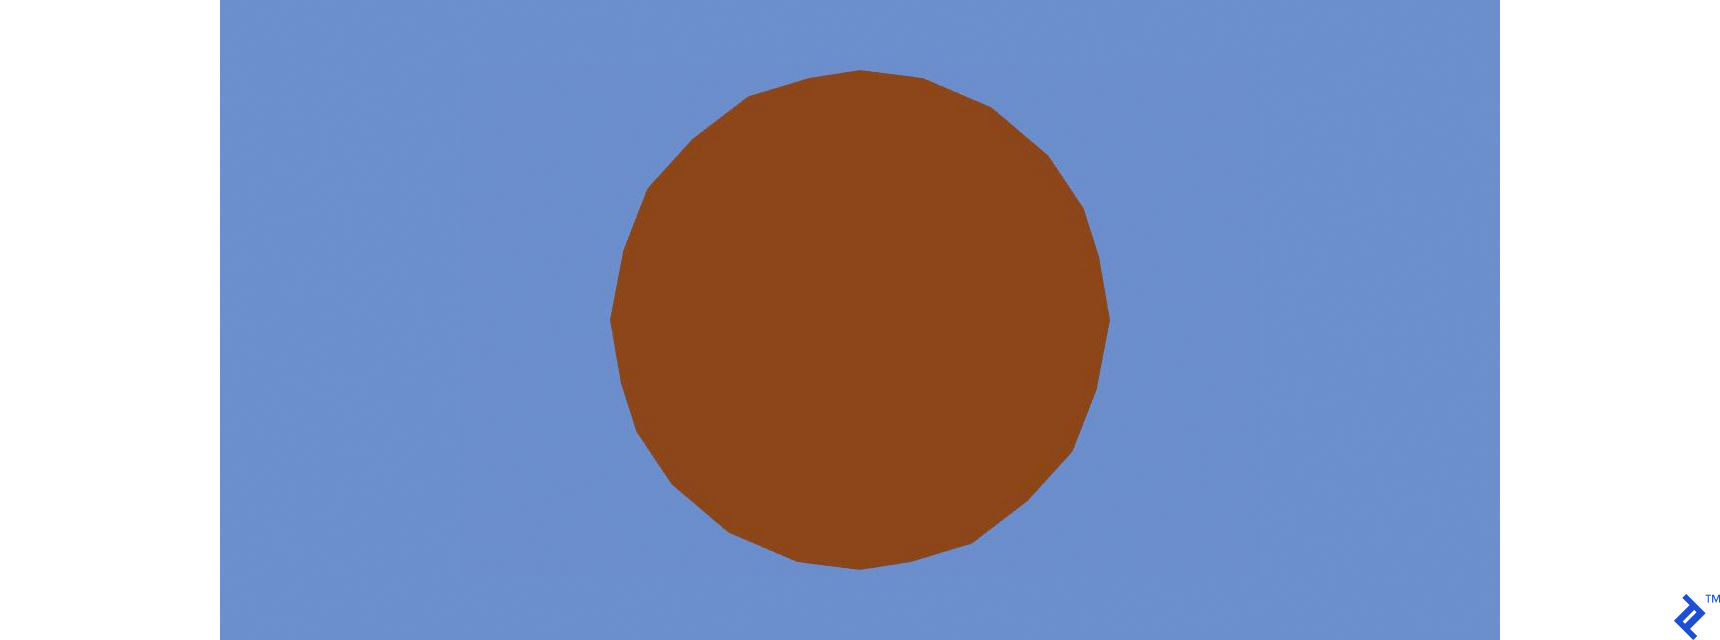 Brown object drawn on the canvas